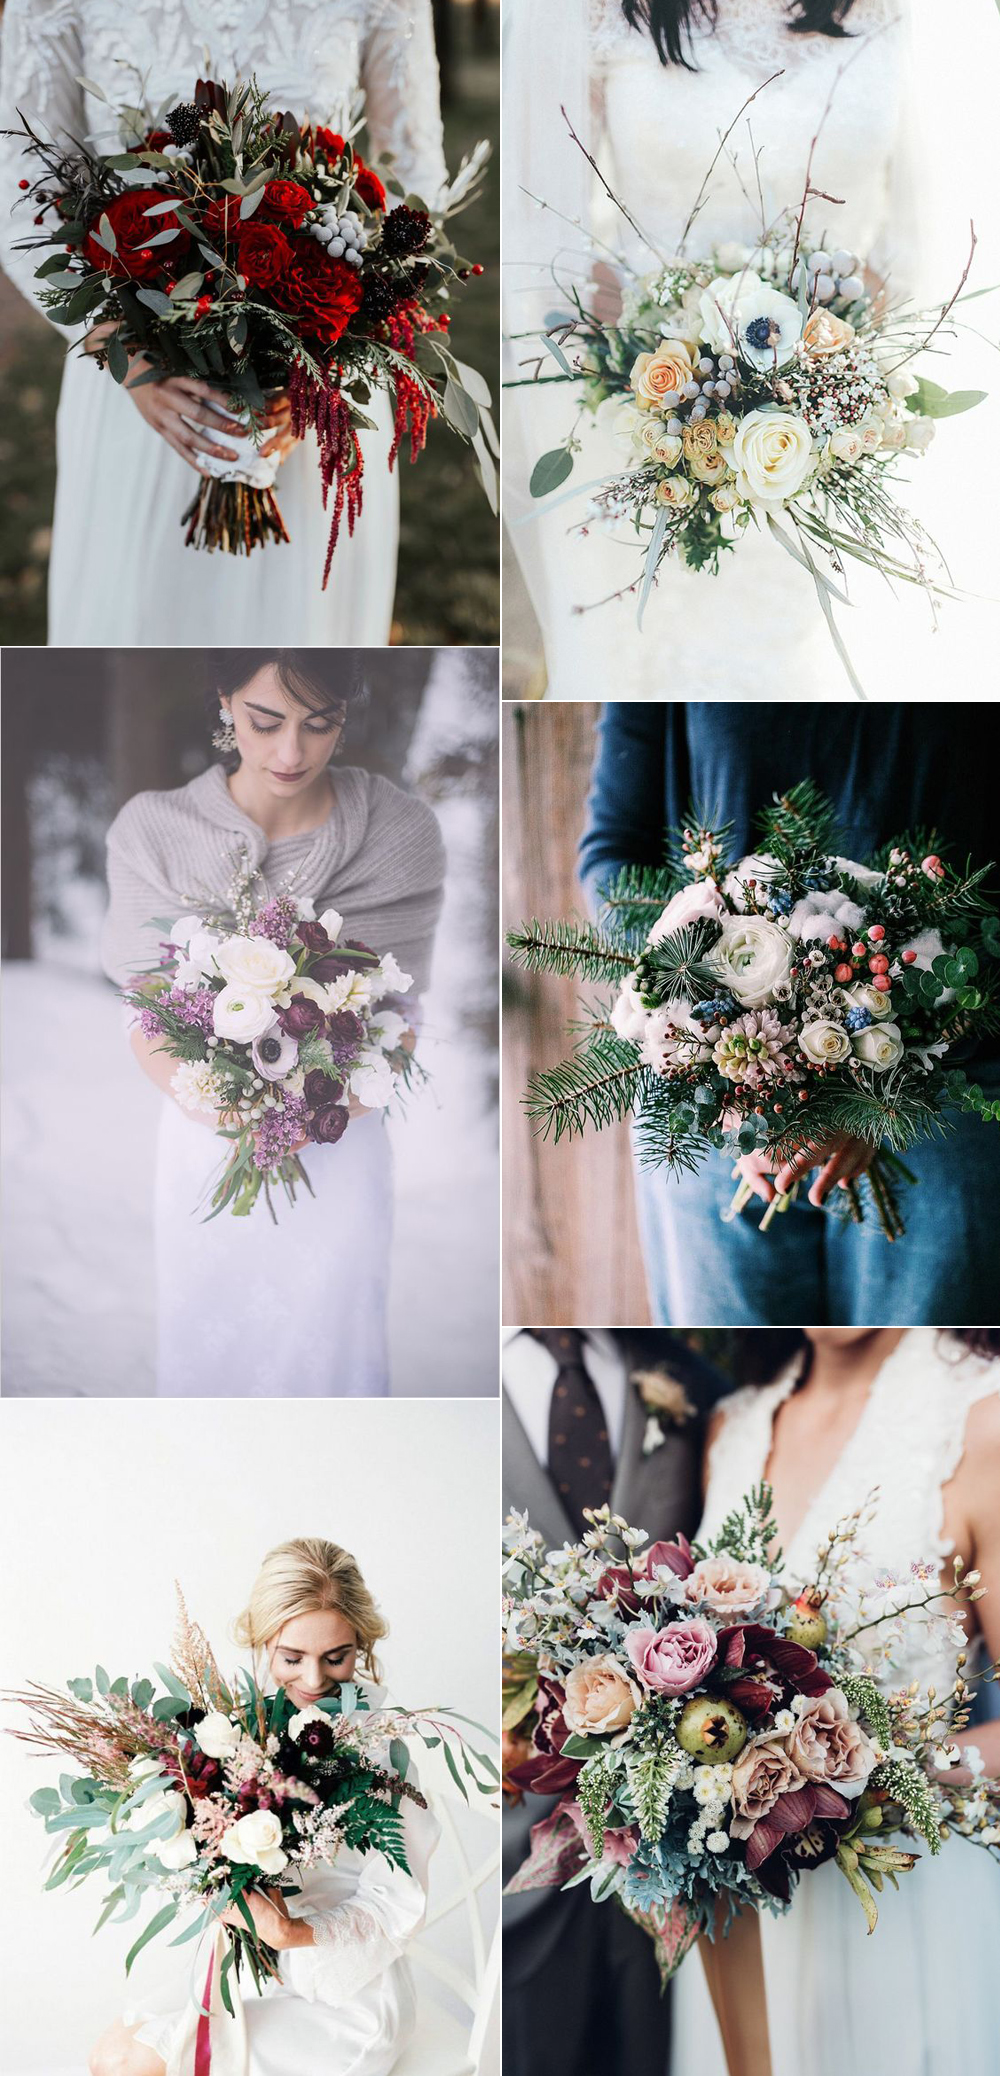 {Image Sources: Red and green bouquet featured on Green Wedding Shoes - photo by Susan Alyse Photography ; white bouquet featured on Whimsical Wonderland Weddings - photo by Jess Petrie ; Purple, green and white bouquet featured on Wedding Chicks ; Pine tree bouquet featured on I Take You - photo by Flower Power ; Burgundy and green bouquet featured on Aisle Society - photo by Sheri McMahon Photography ; pink and burgundy bouquet featured on Weddings Online }